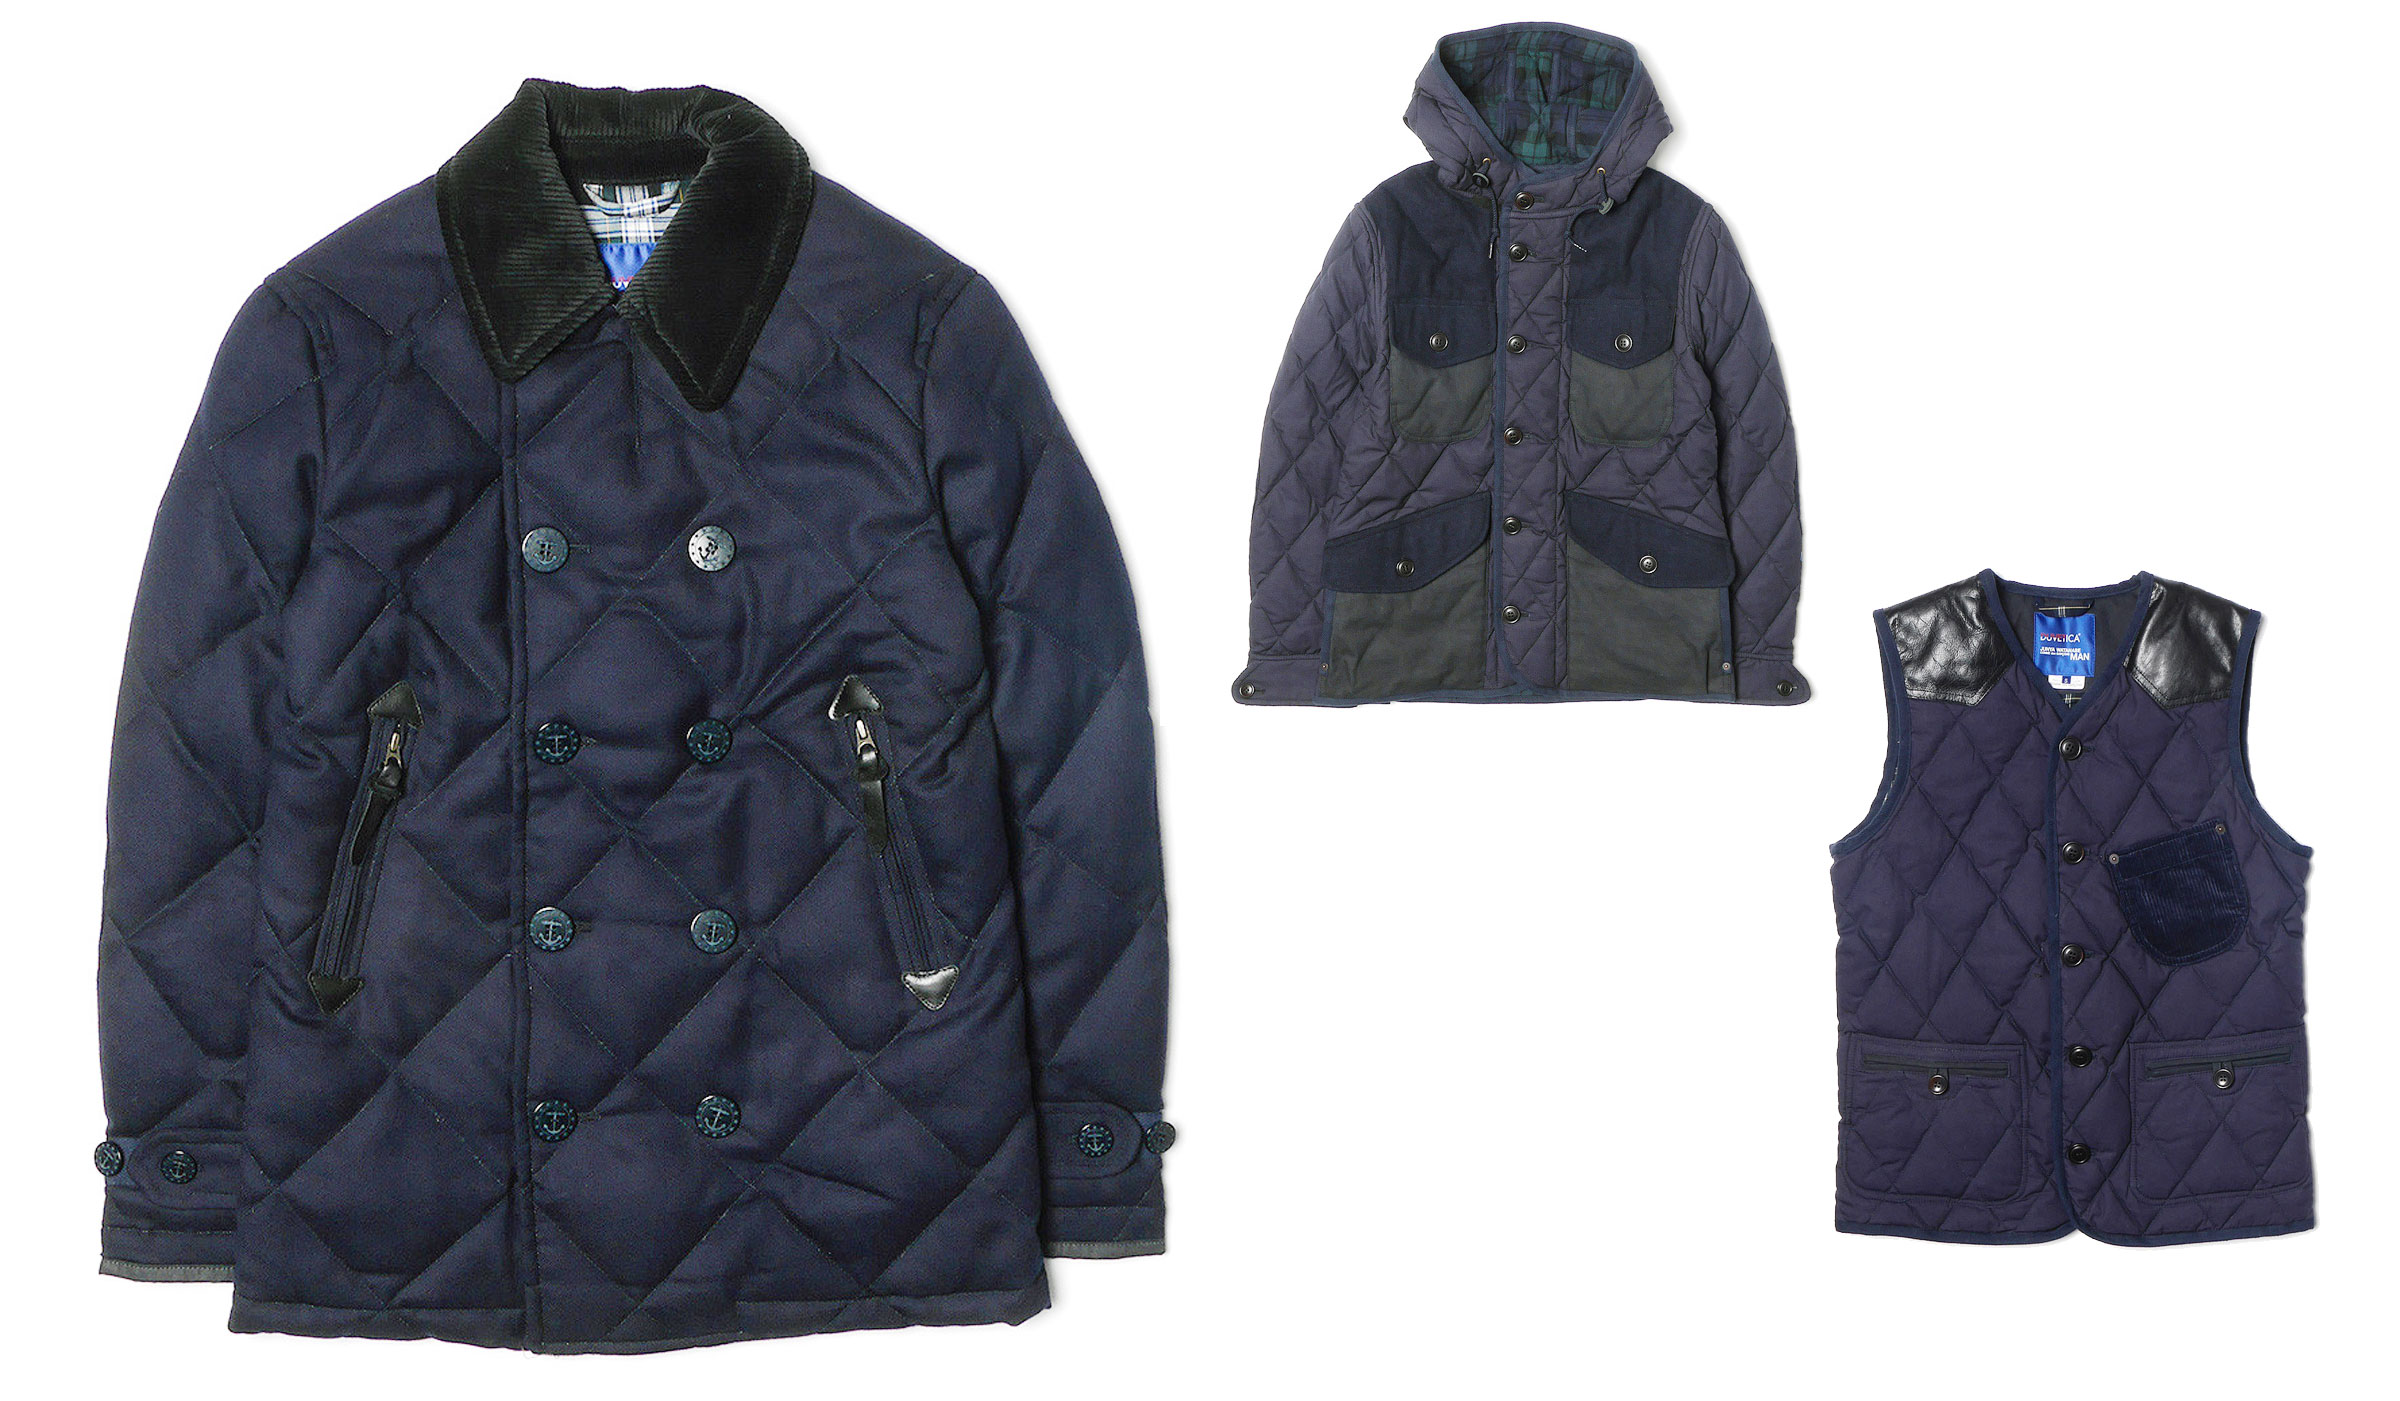 JUNYA WATANABE MAN X DUVETICA COLLECTION